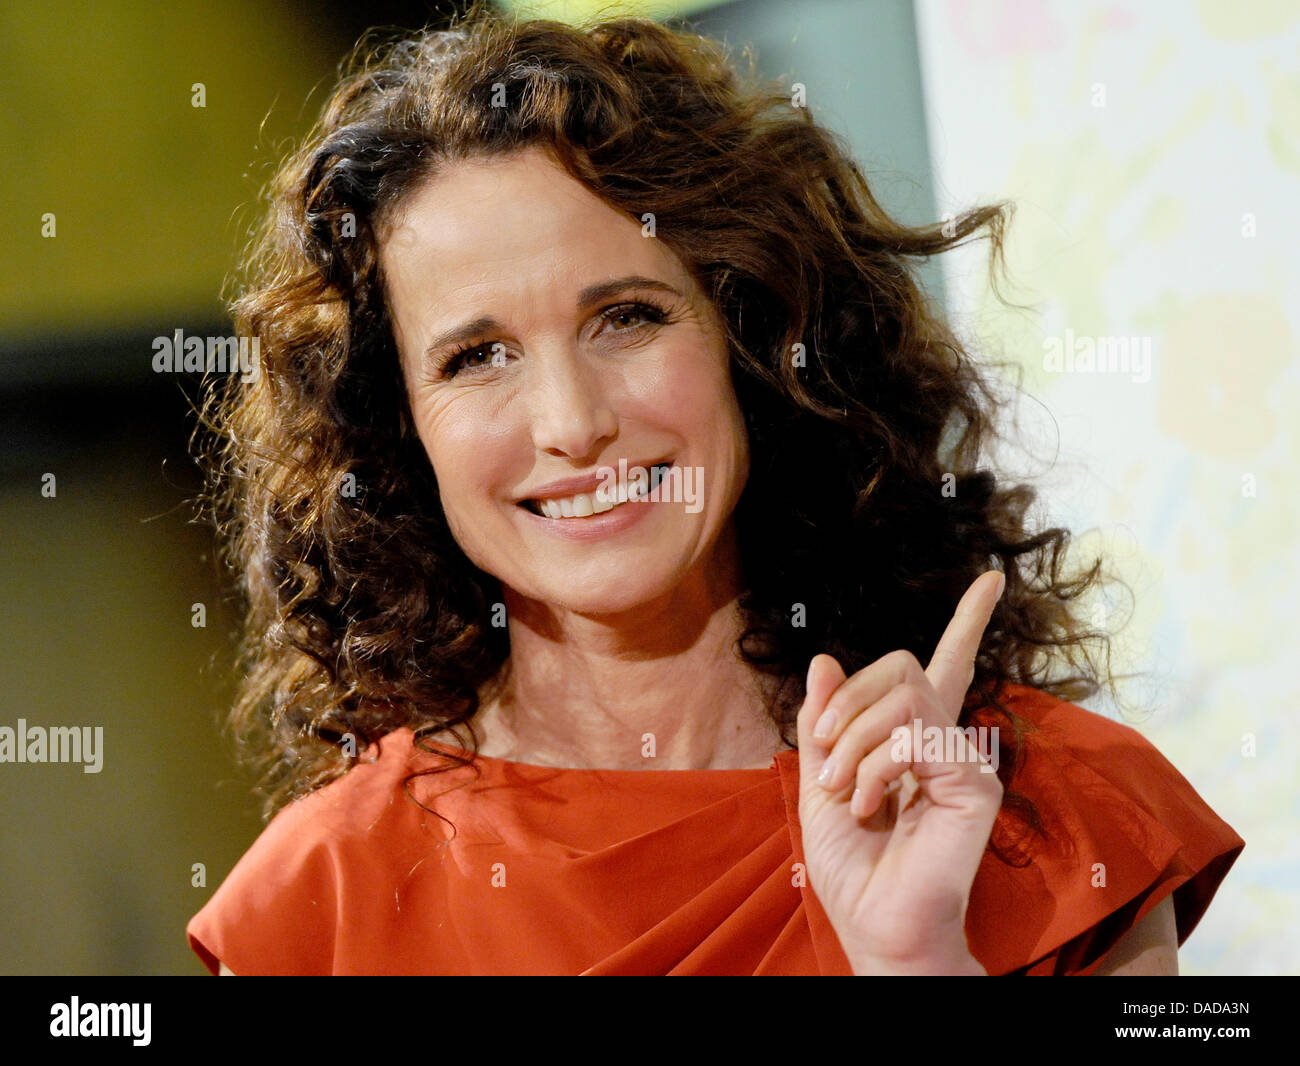 Andie Macdonald american actress andie macdowell prmotes the charity